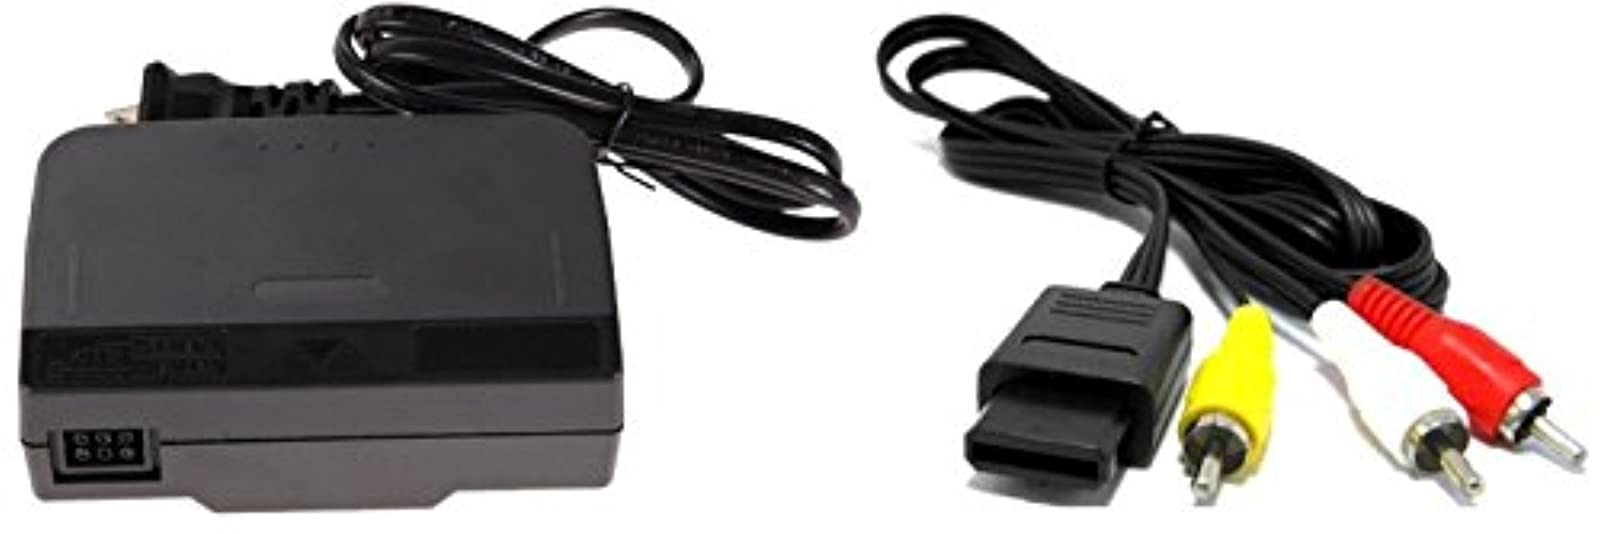 Video Game Accessories AC Adapter Power Supply & AV Cable Cord For